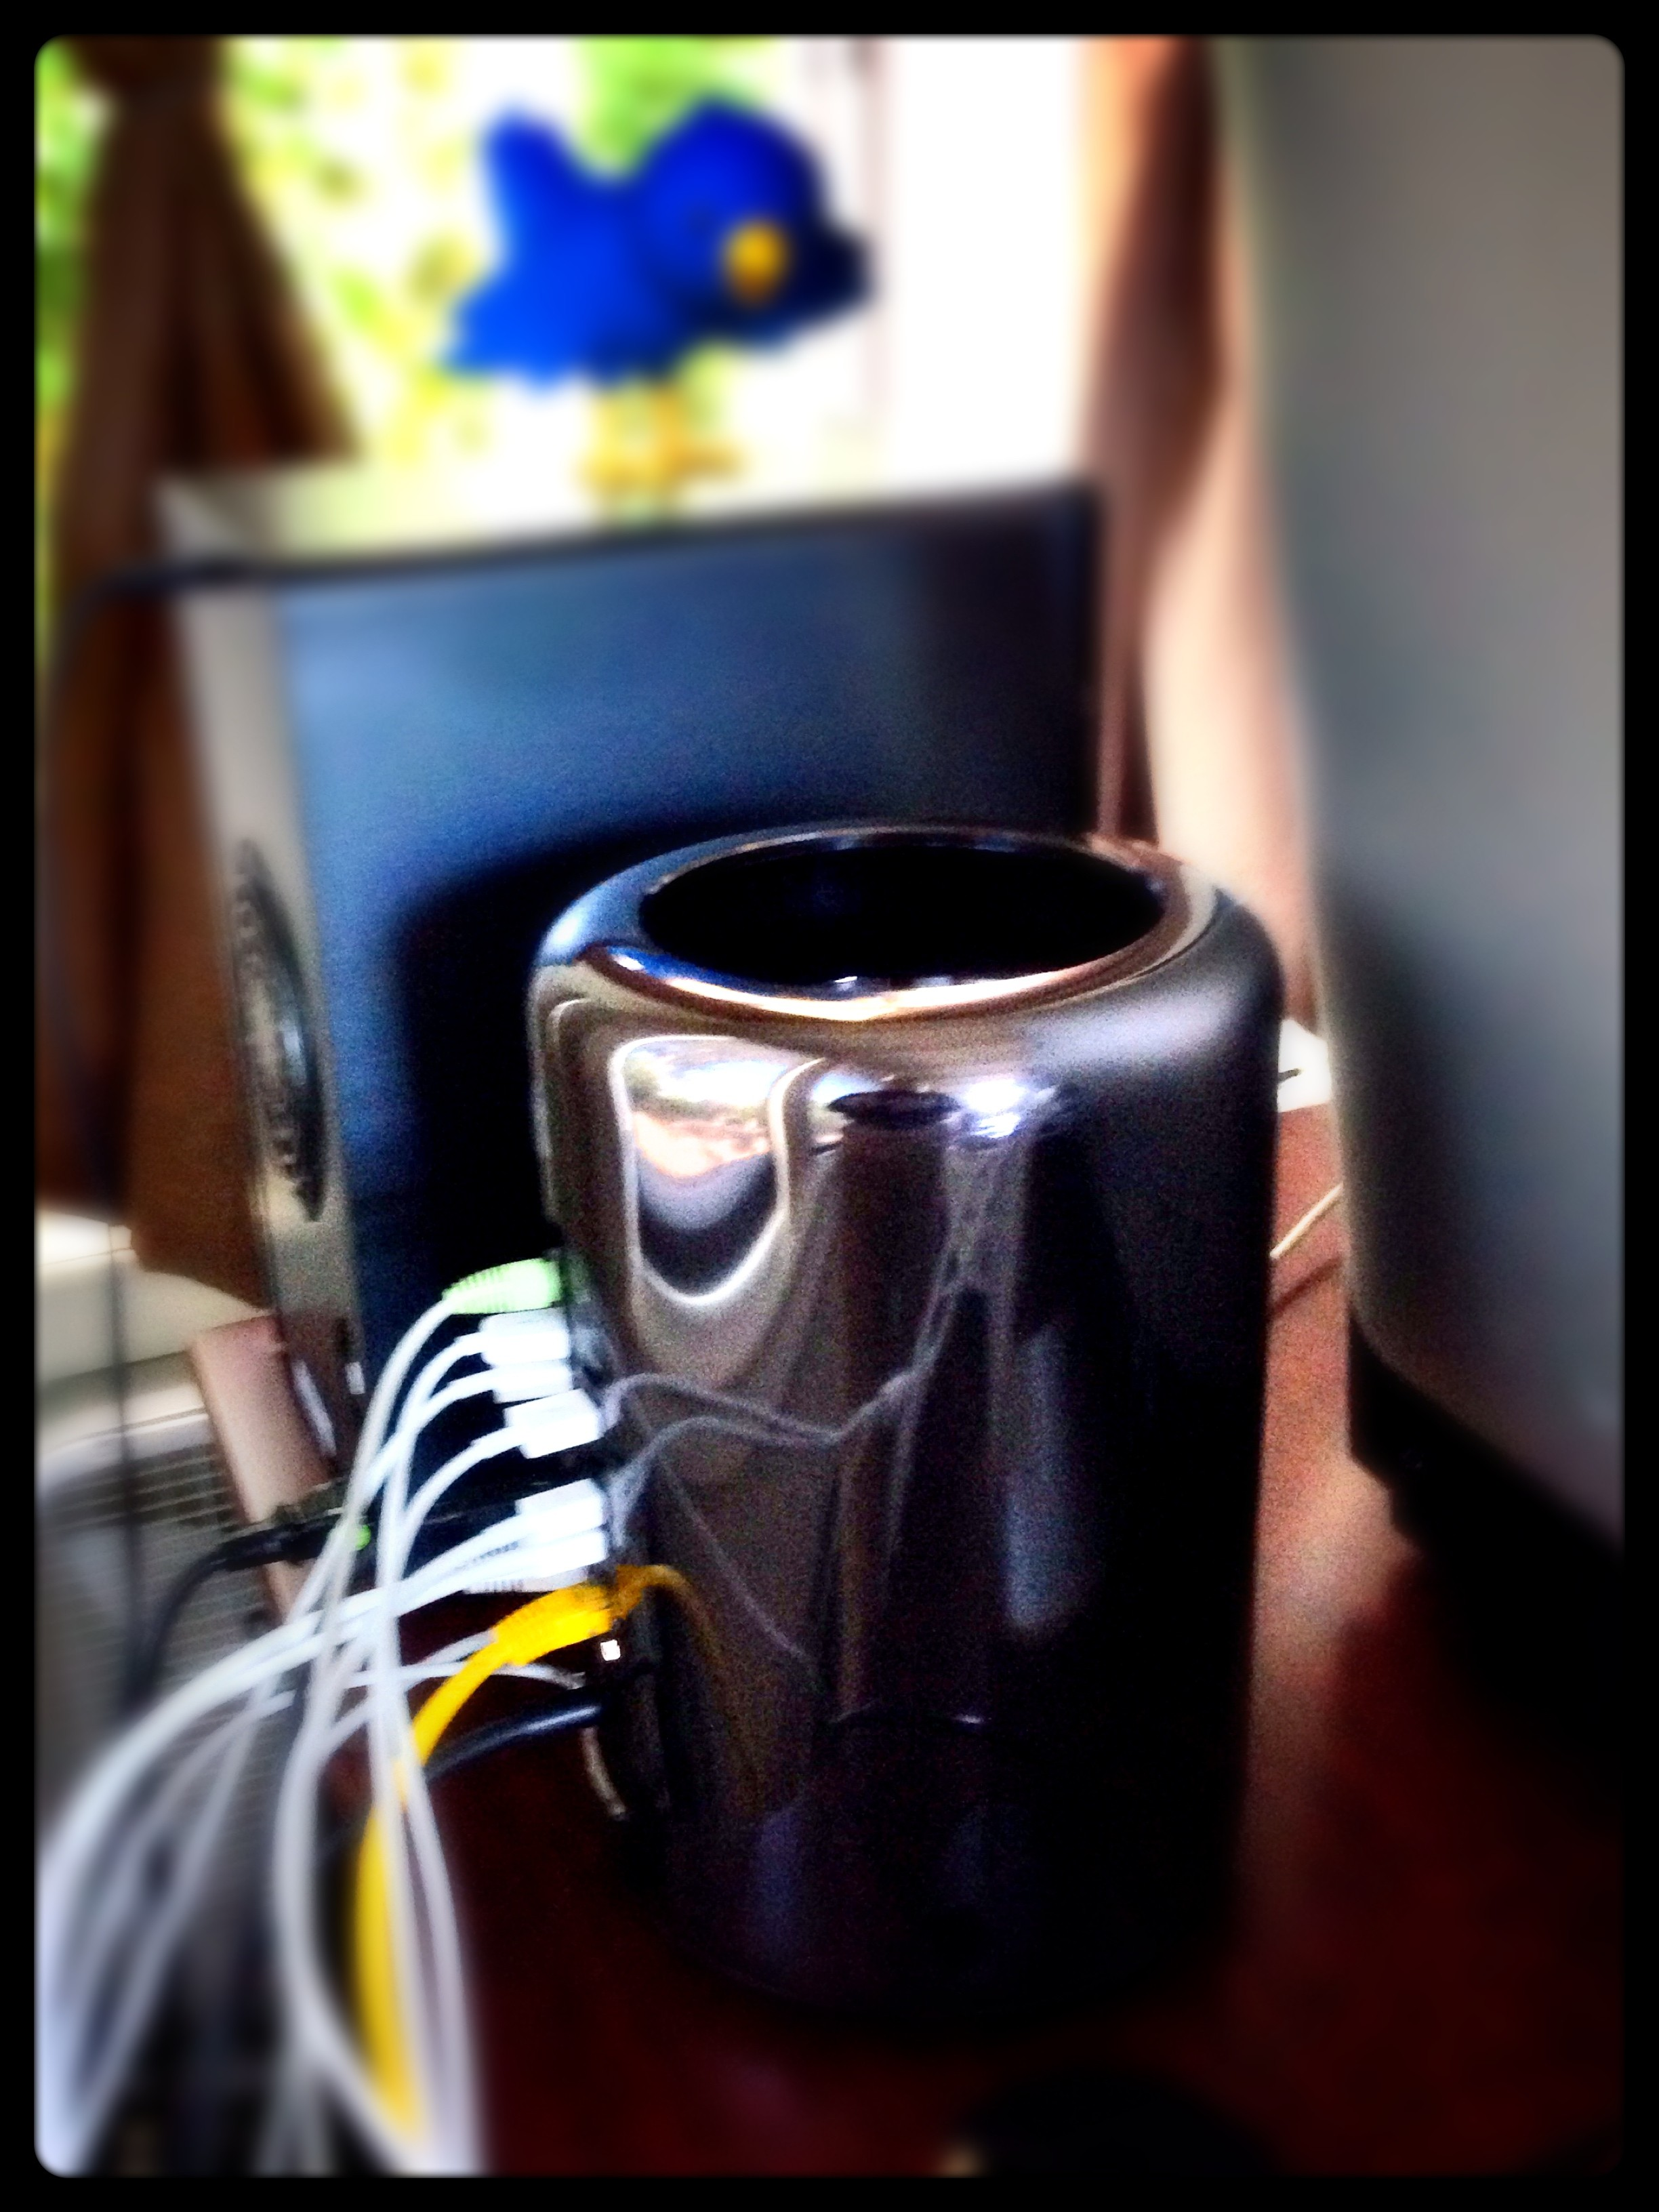 New Mac Pro: The Baby Is Born